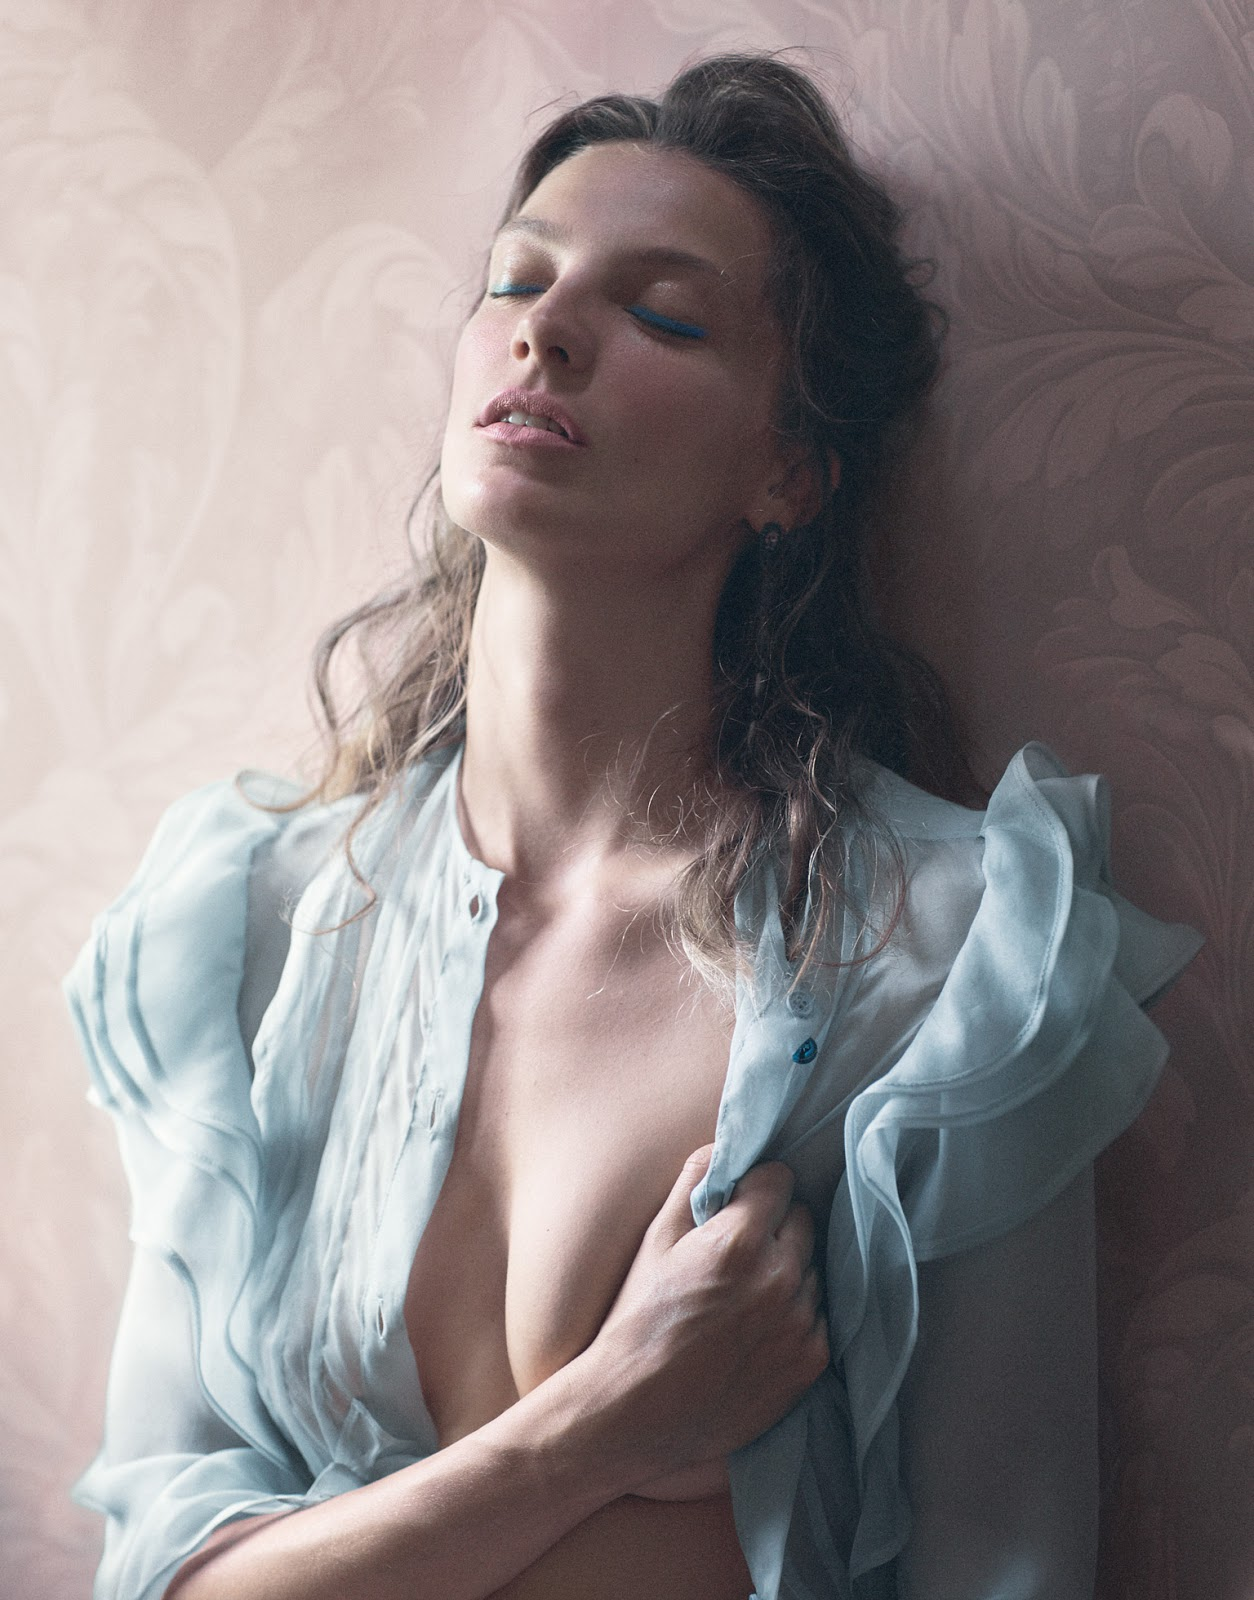 Daria Werbowy in Soft focus / Porter #10 Fall 2010 (photography: Mikael Jansson, styling: Alex White) via fashioned by love / british fashion blog